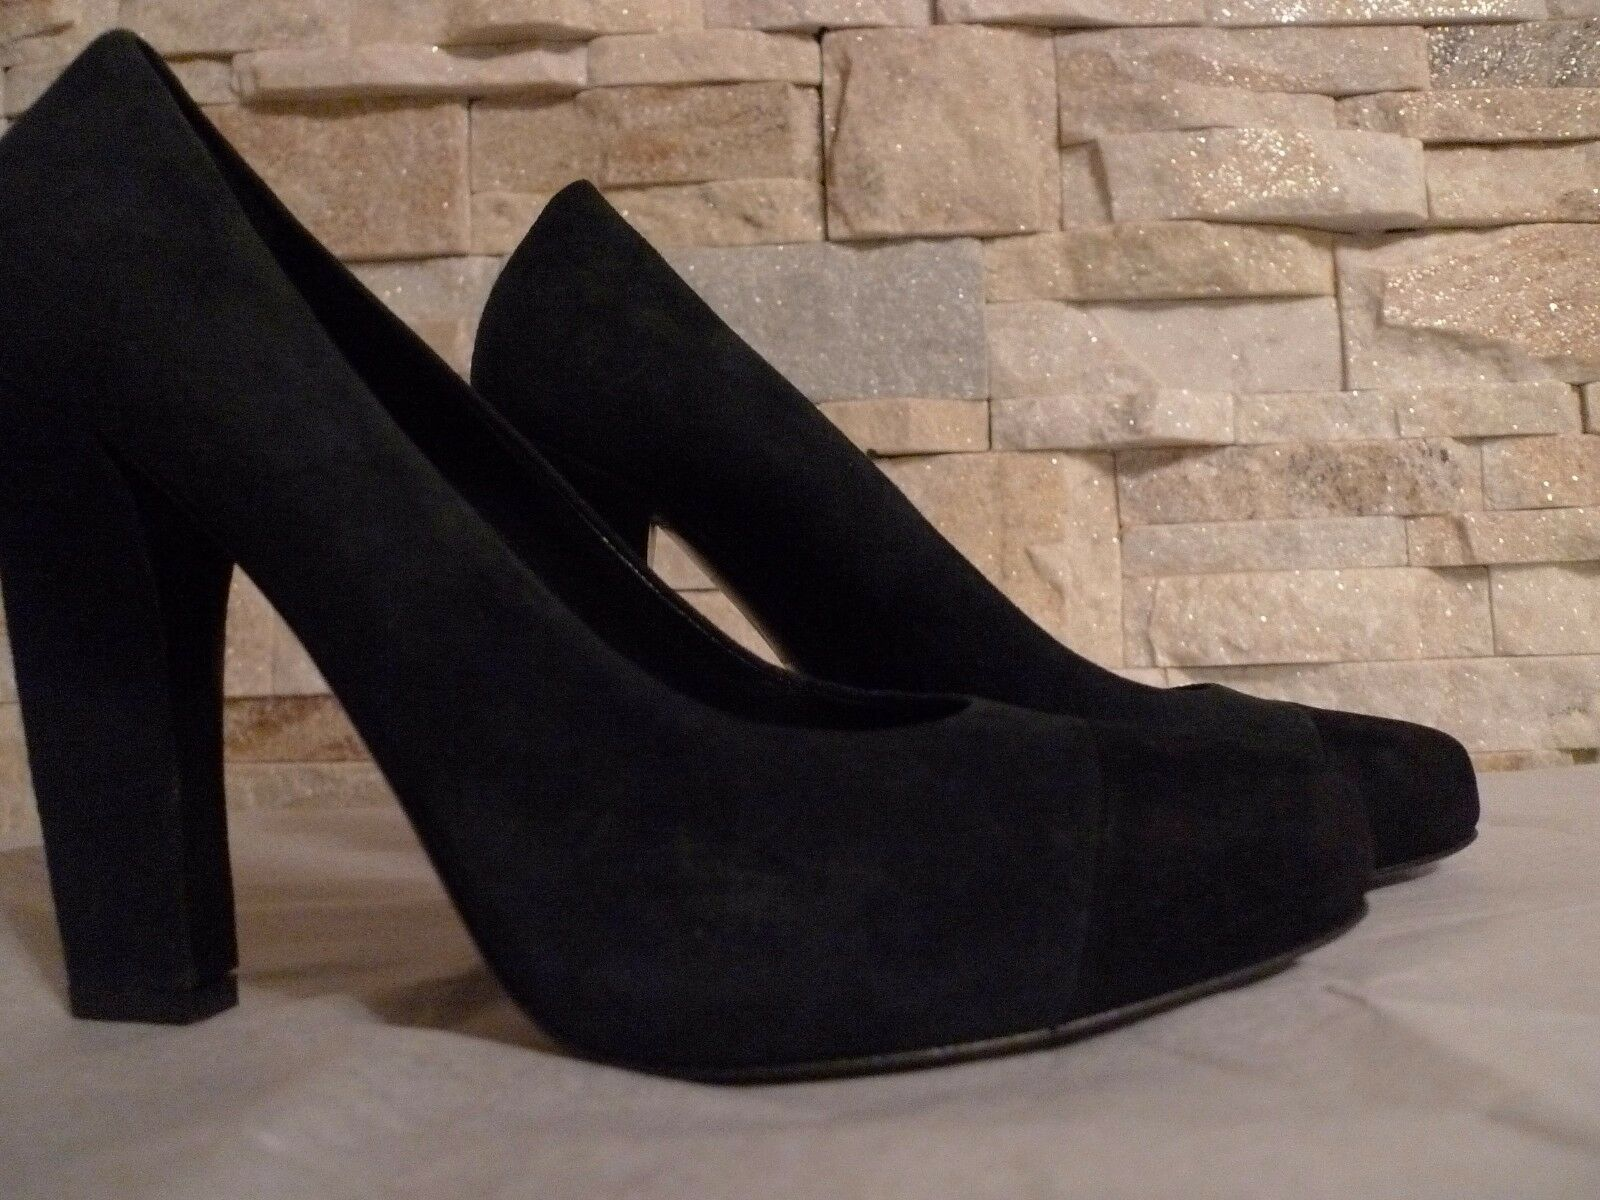 PRADA WOMEN'S SUEDE GREEN BLACK CLASSIC PUMPS  ITALY SIZE 37 7